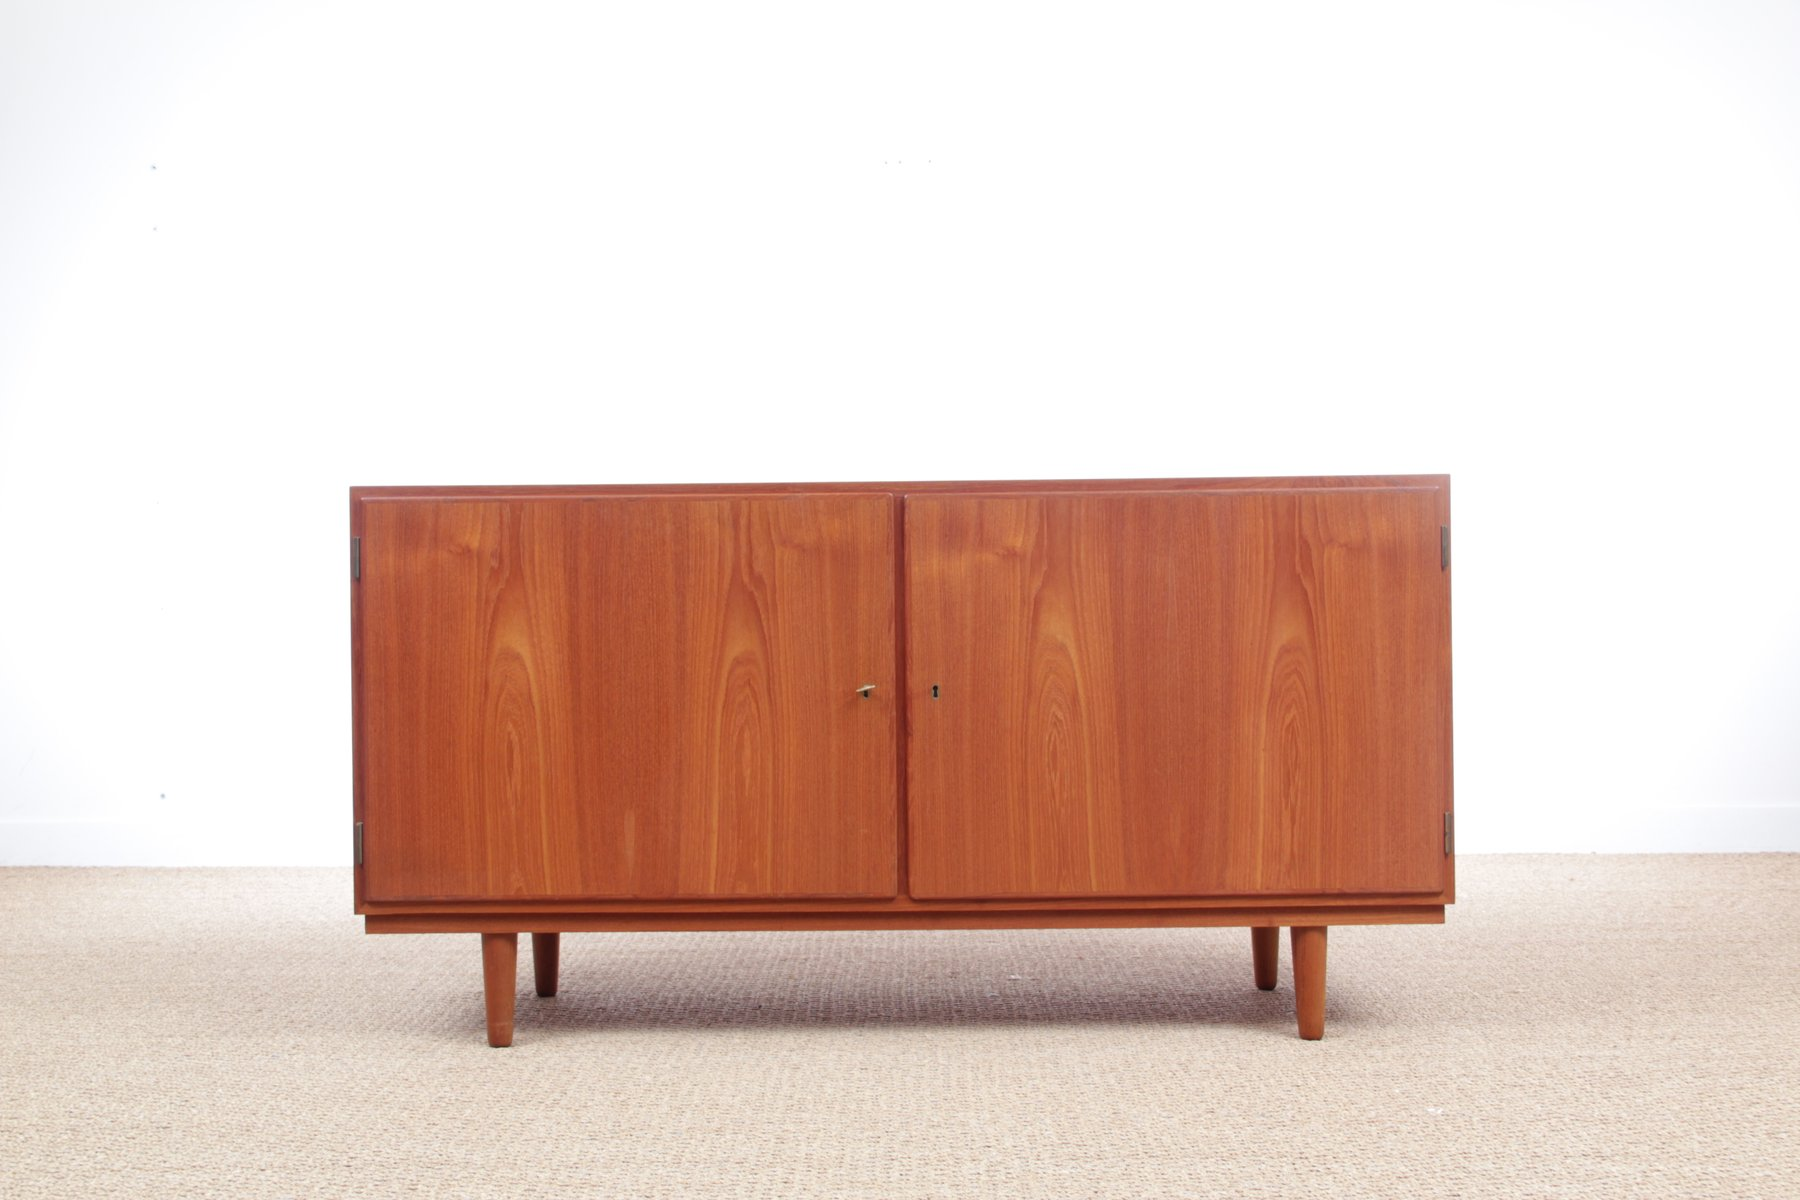 skandinavisches modell hu40 3t teak sideboard von poul. Black Bedroom Furniture Sets. Home Design Ideas